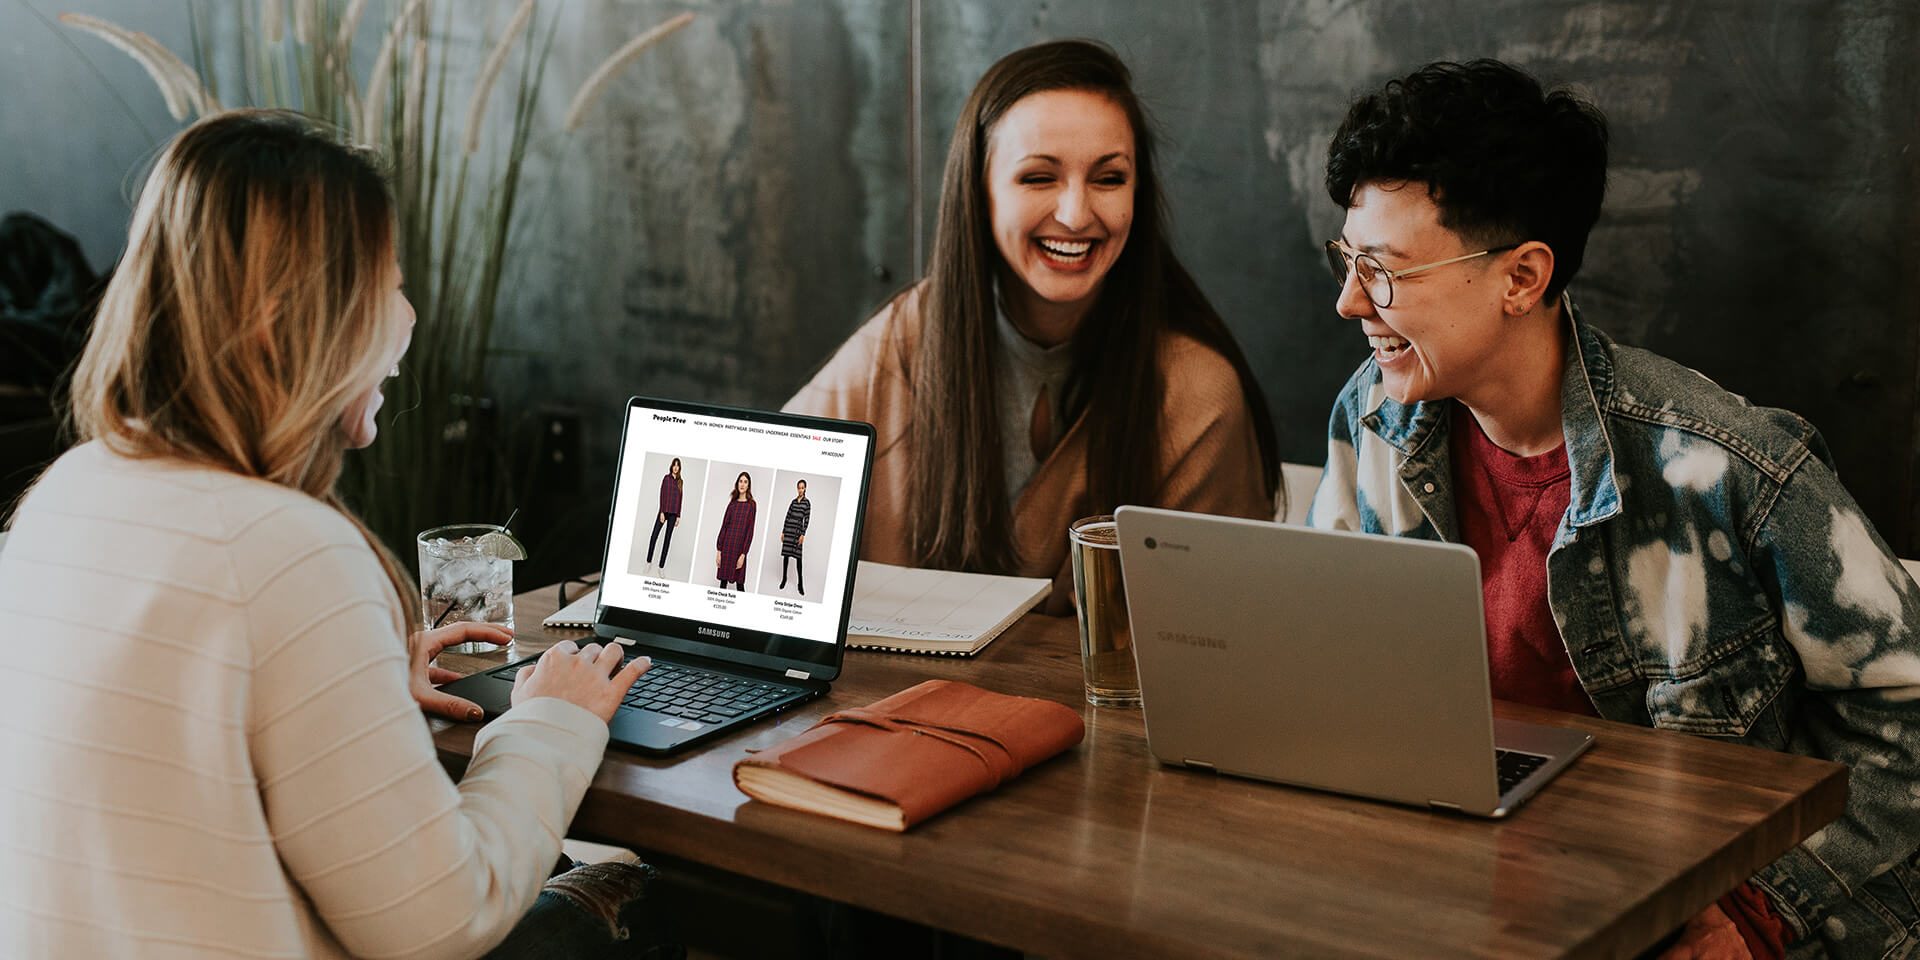 Customer journey mapping in e-commerce: a step by step guide